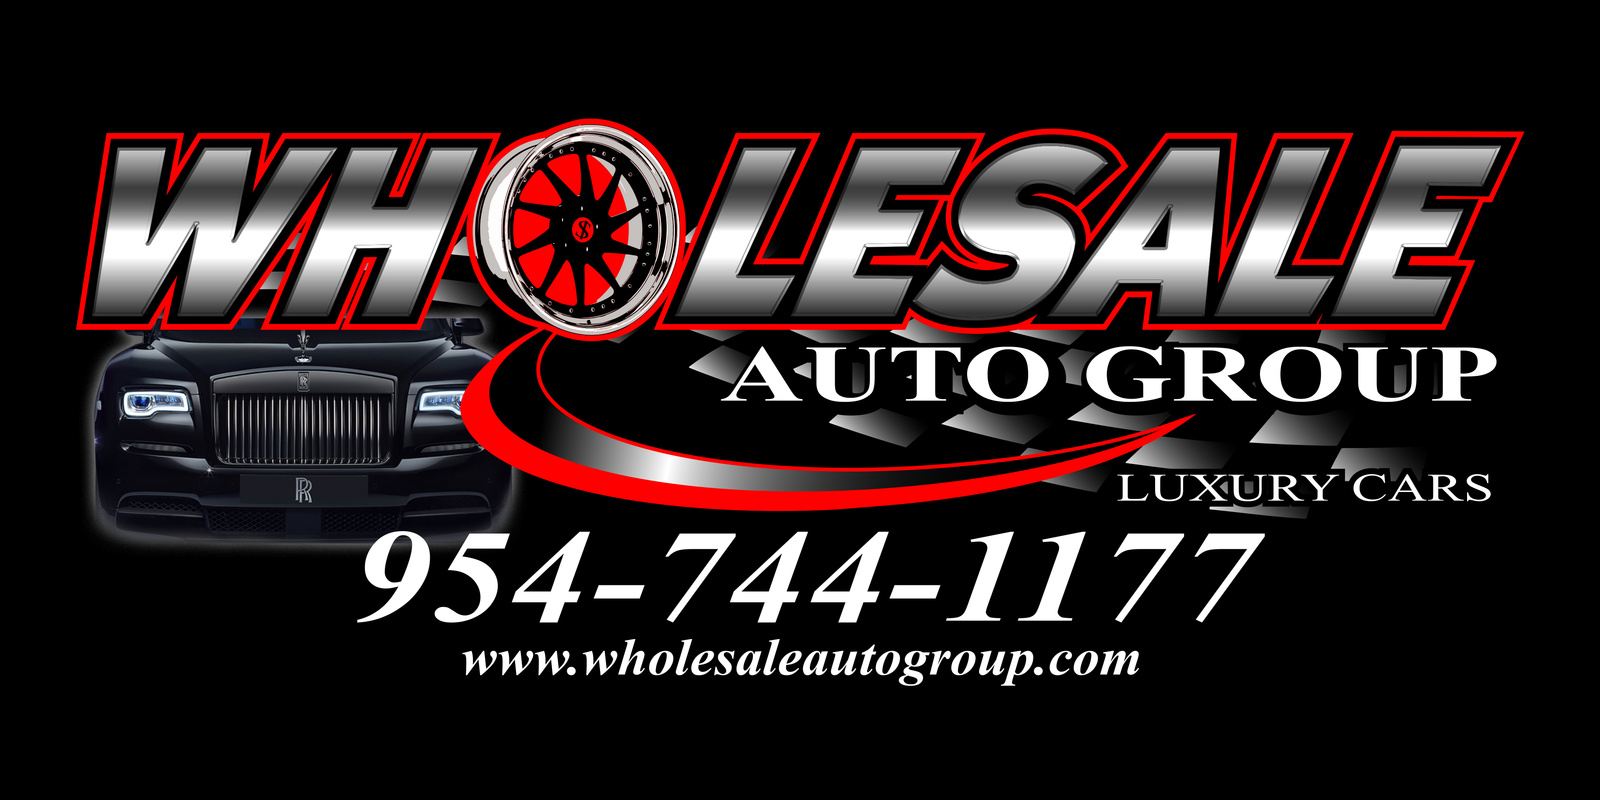 Wholesale Auto Group Fort Lauderdale Fl Read Consumer Reviews Browse Used And New Cars For Sale